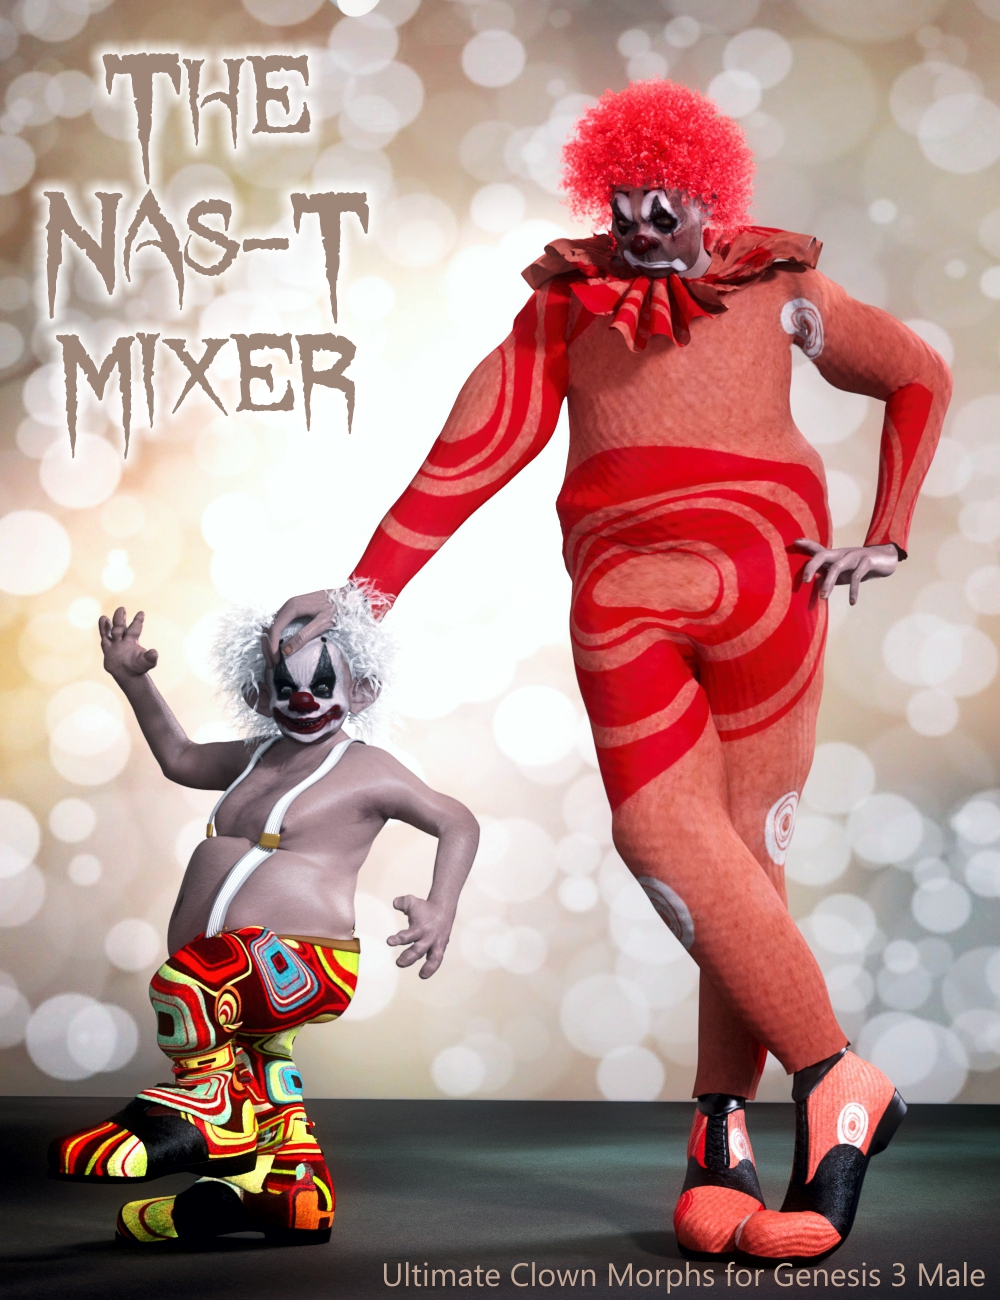 The Nas-T Mixer by brahann